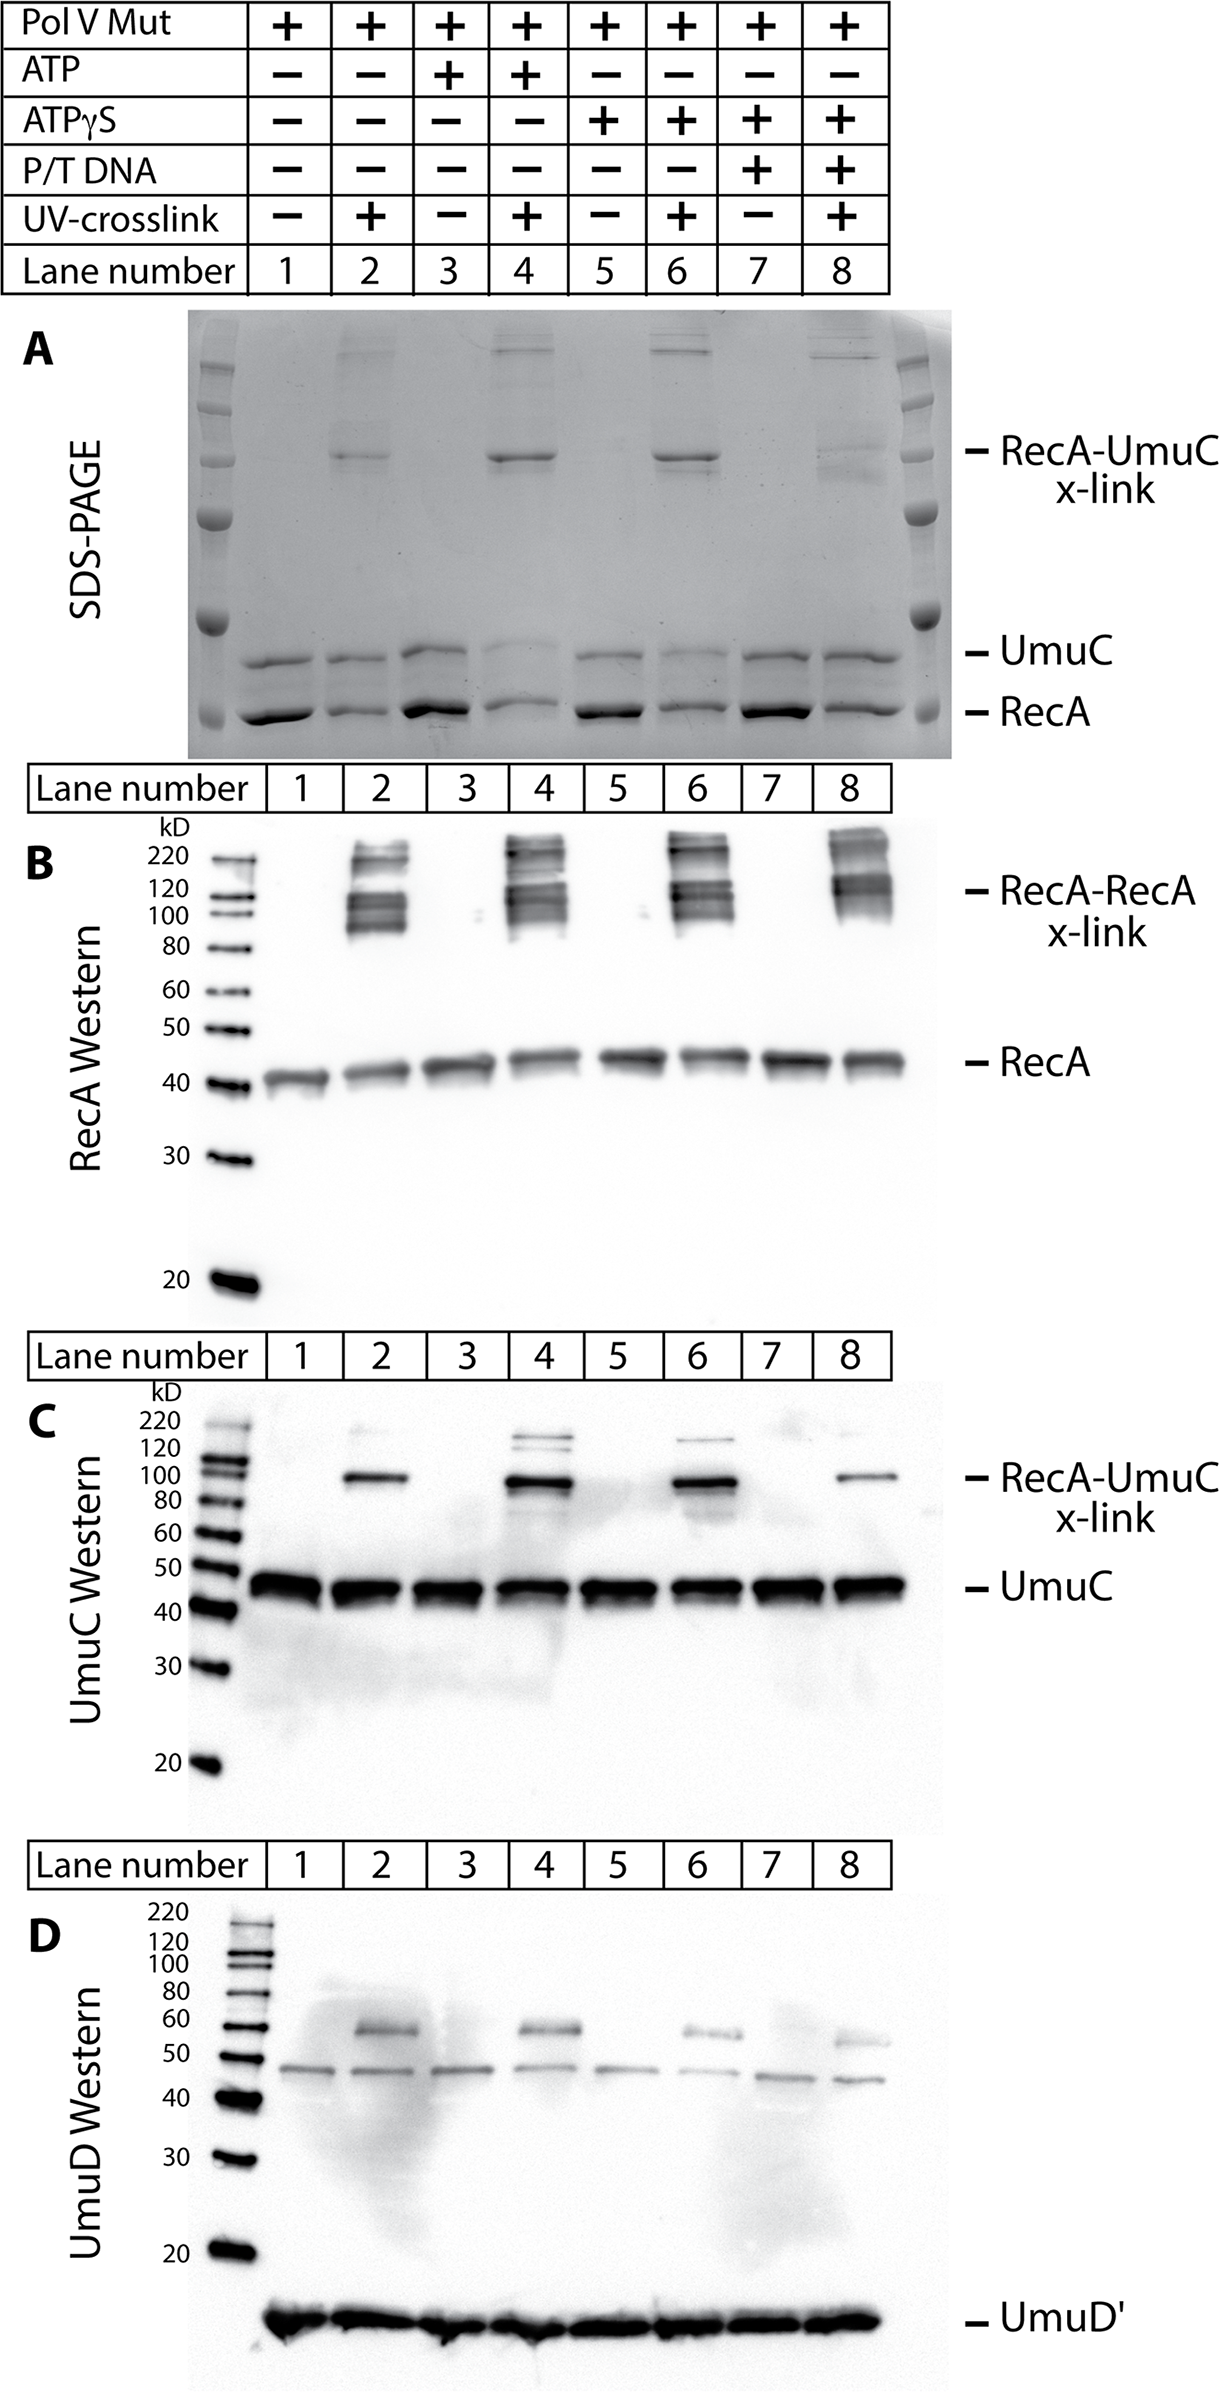 The RecA 3'-surface interacts with UmuC in pol V Mut.